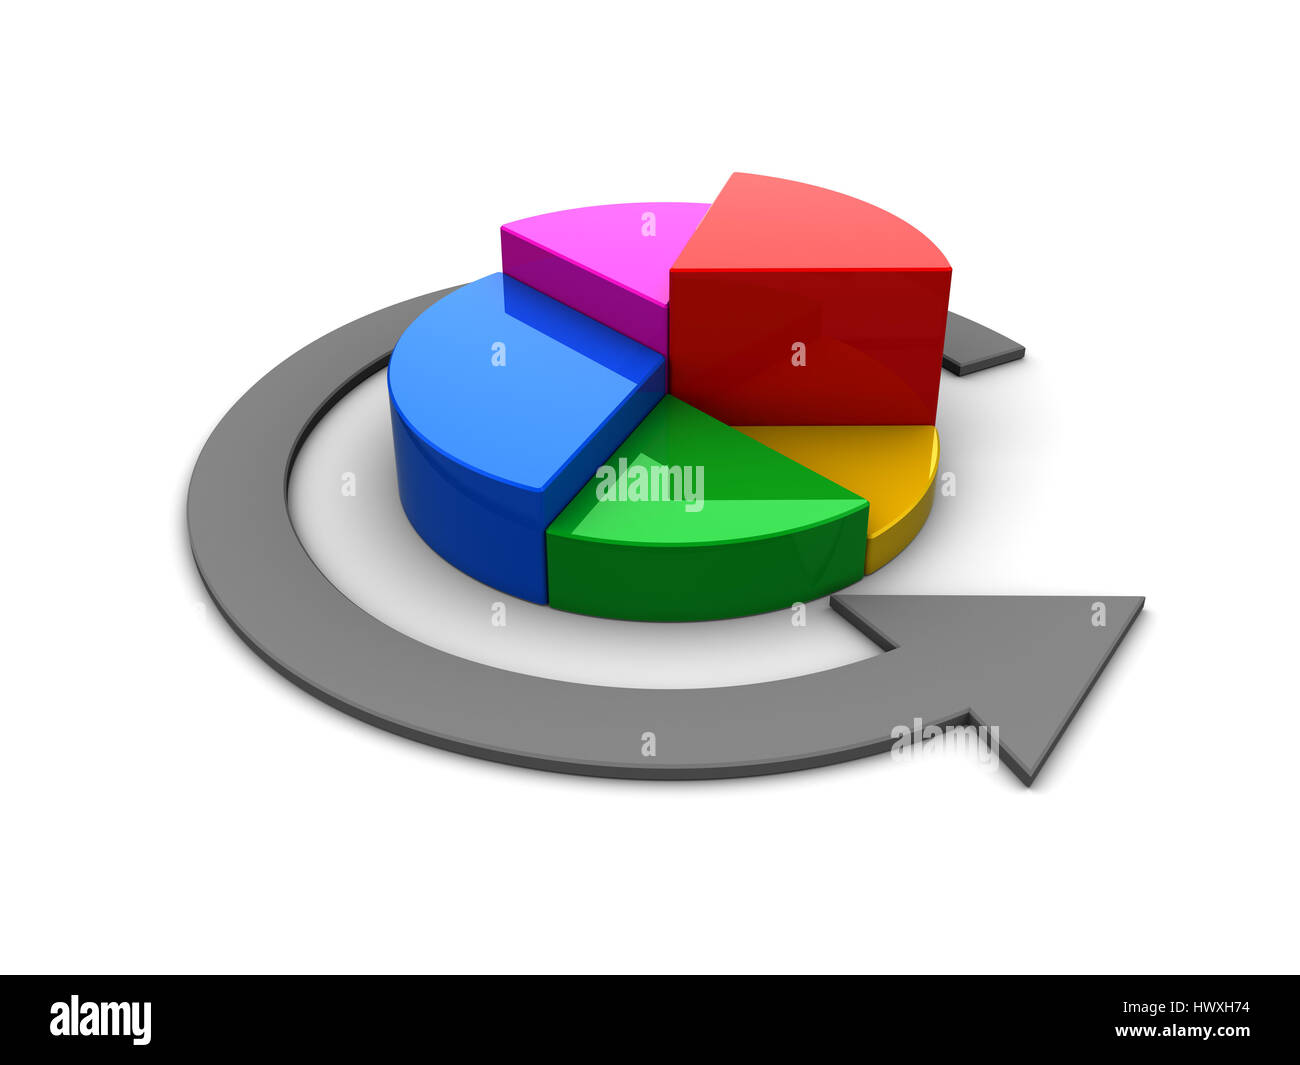 3d illustration of colorful pie chart over white background Stock Photo